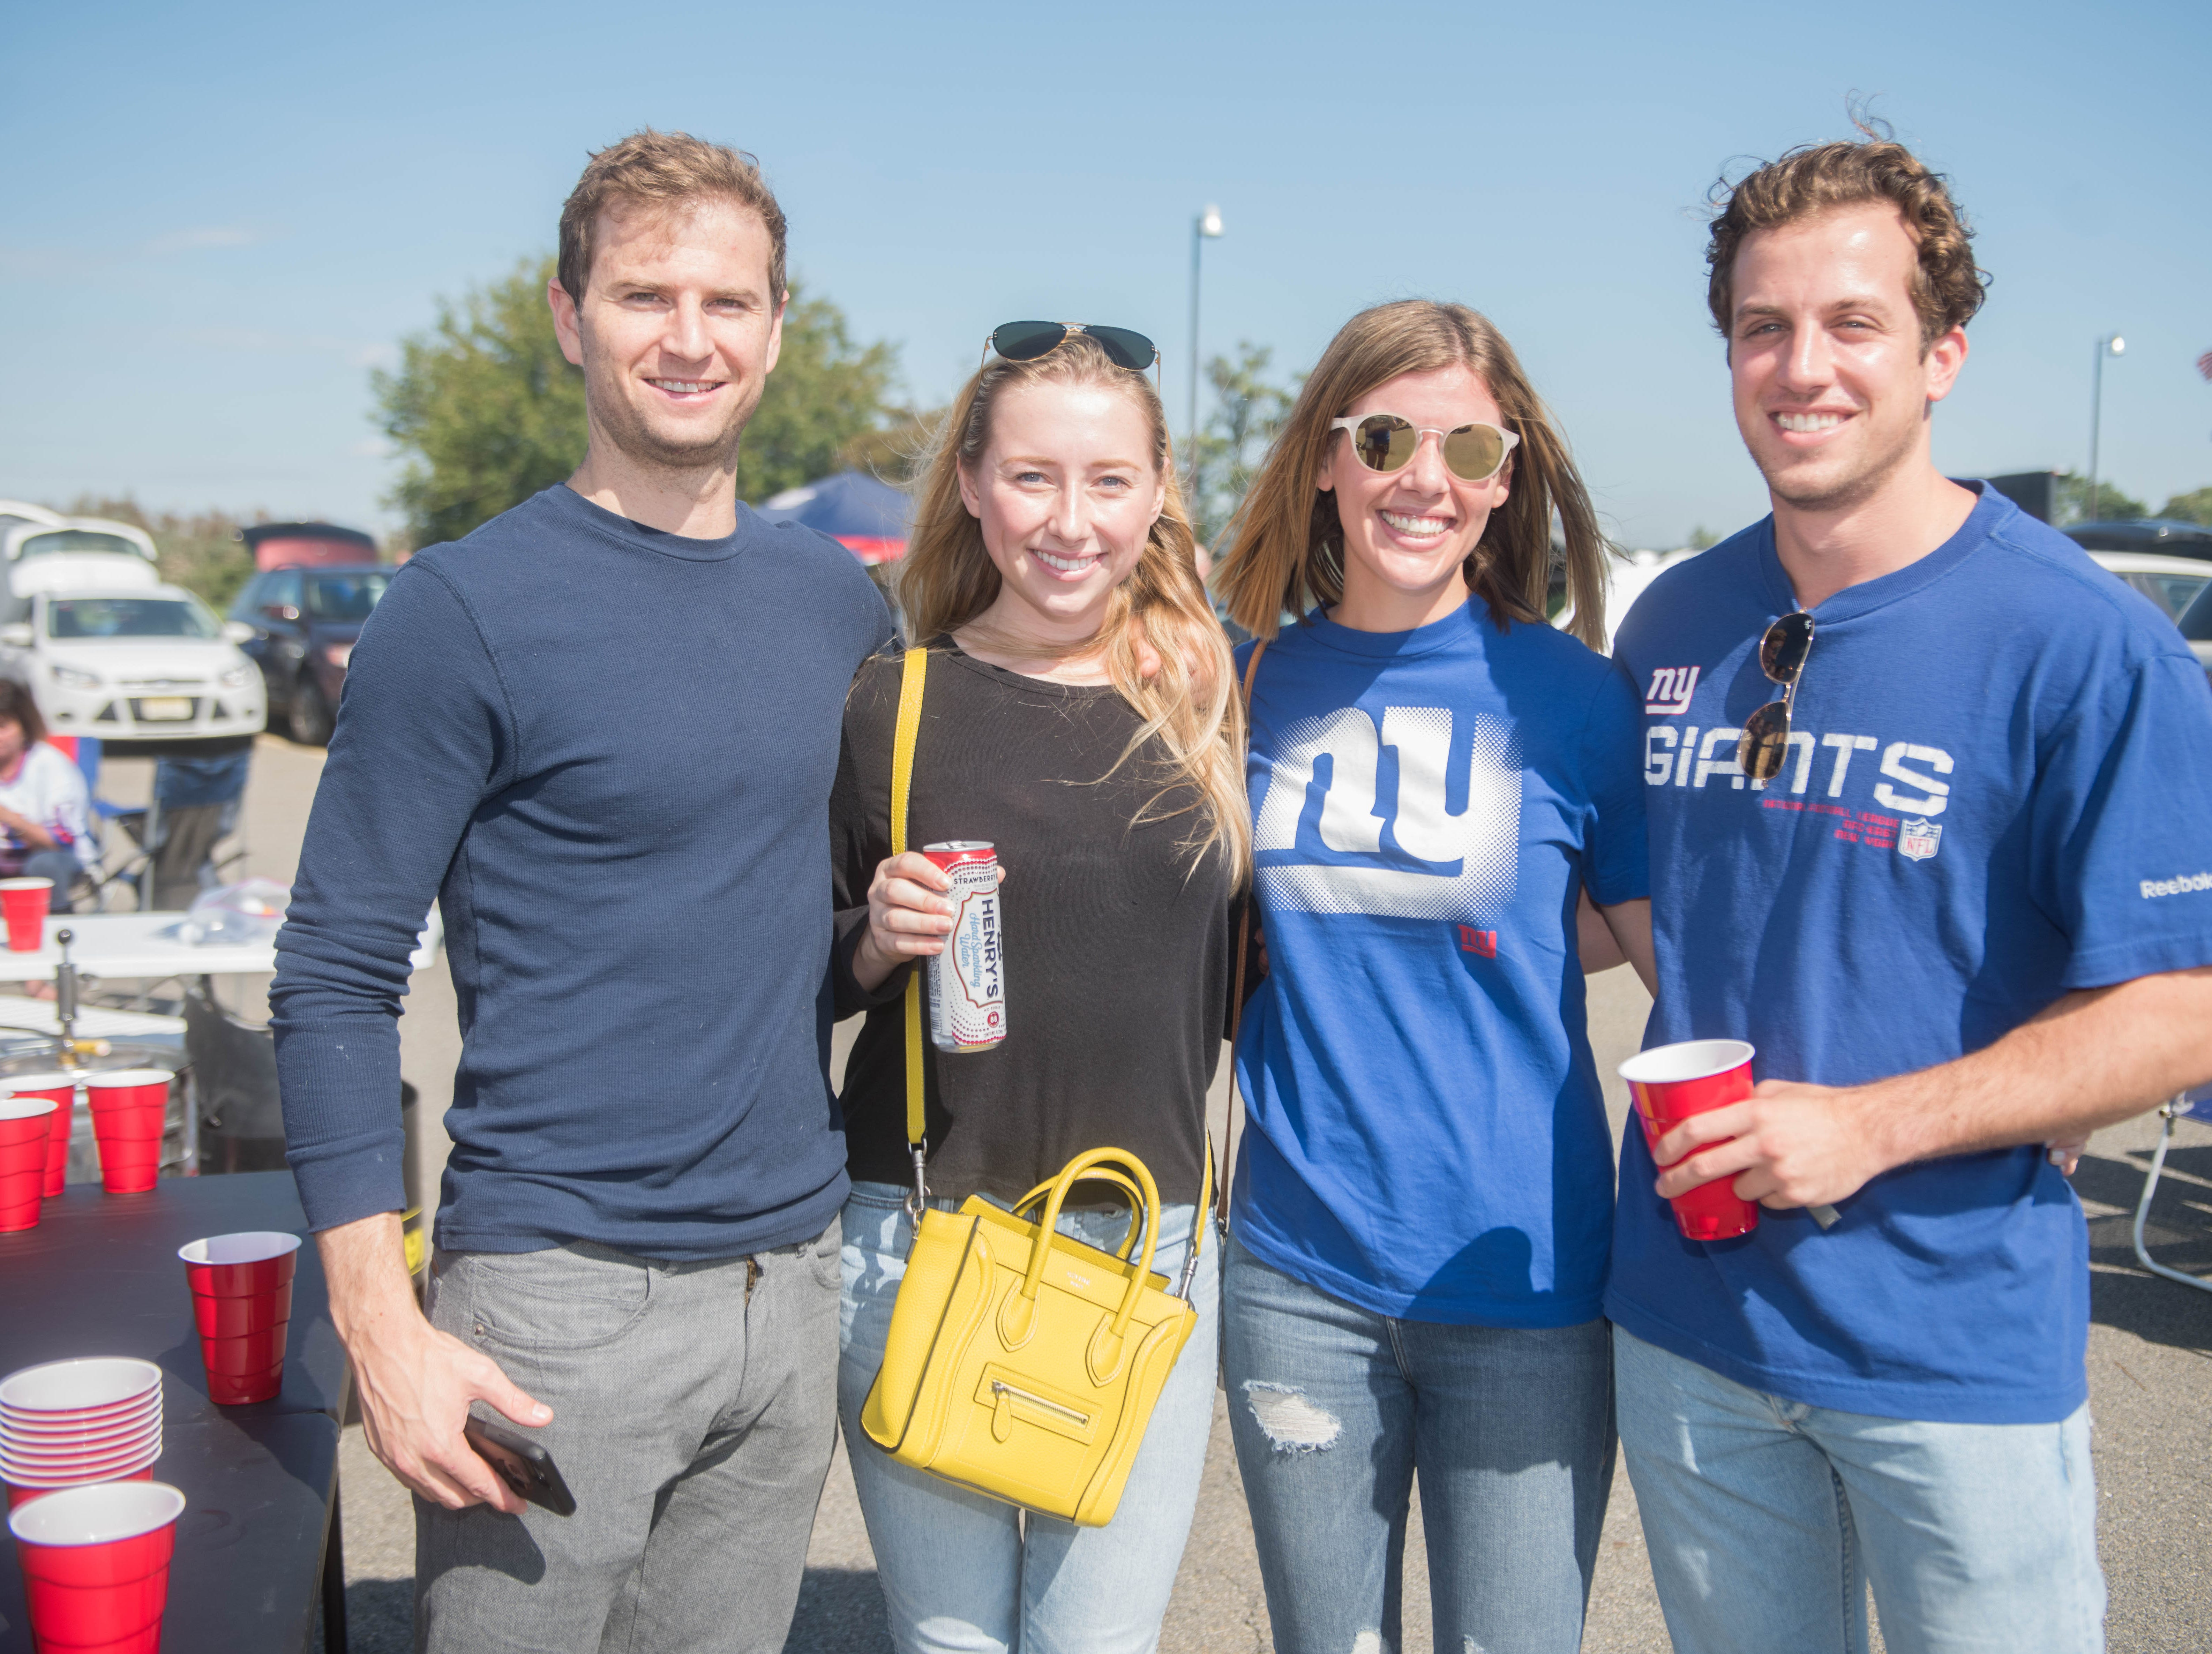 Joe Aronovsky, Christina Taylor, Samantha Brown and Brendan Moatz at the Giants vs. Saints tailgate party, Sunday, Sept. 30, 2018.